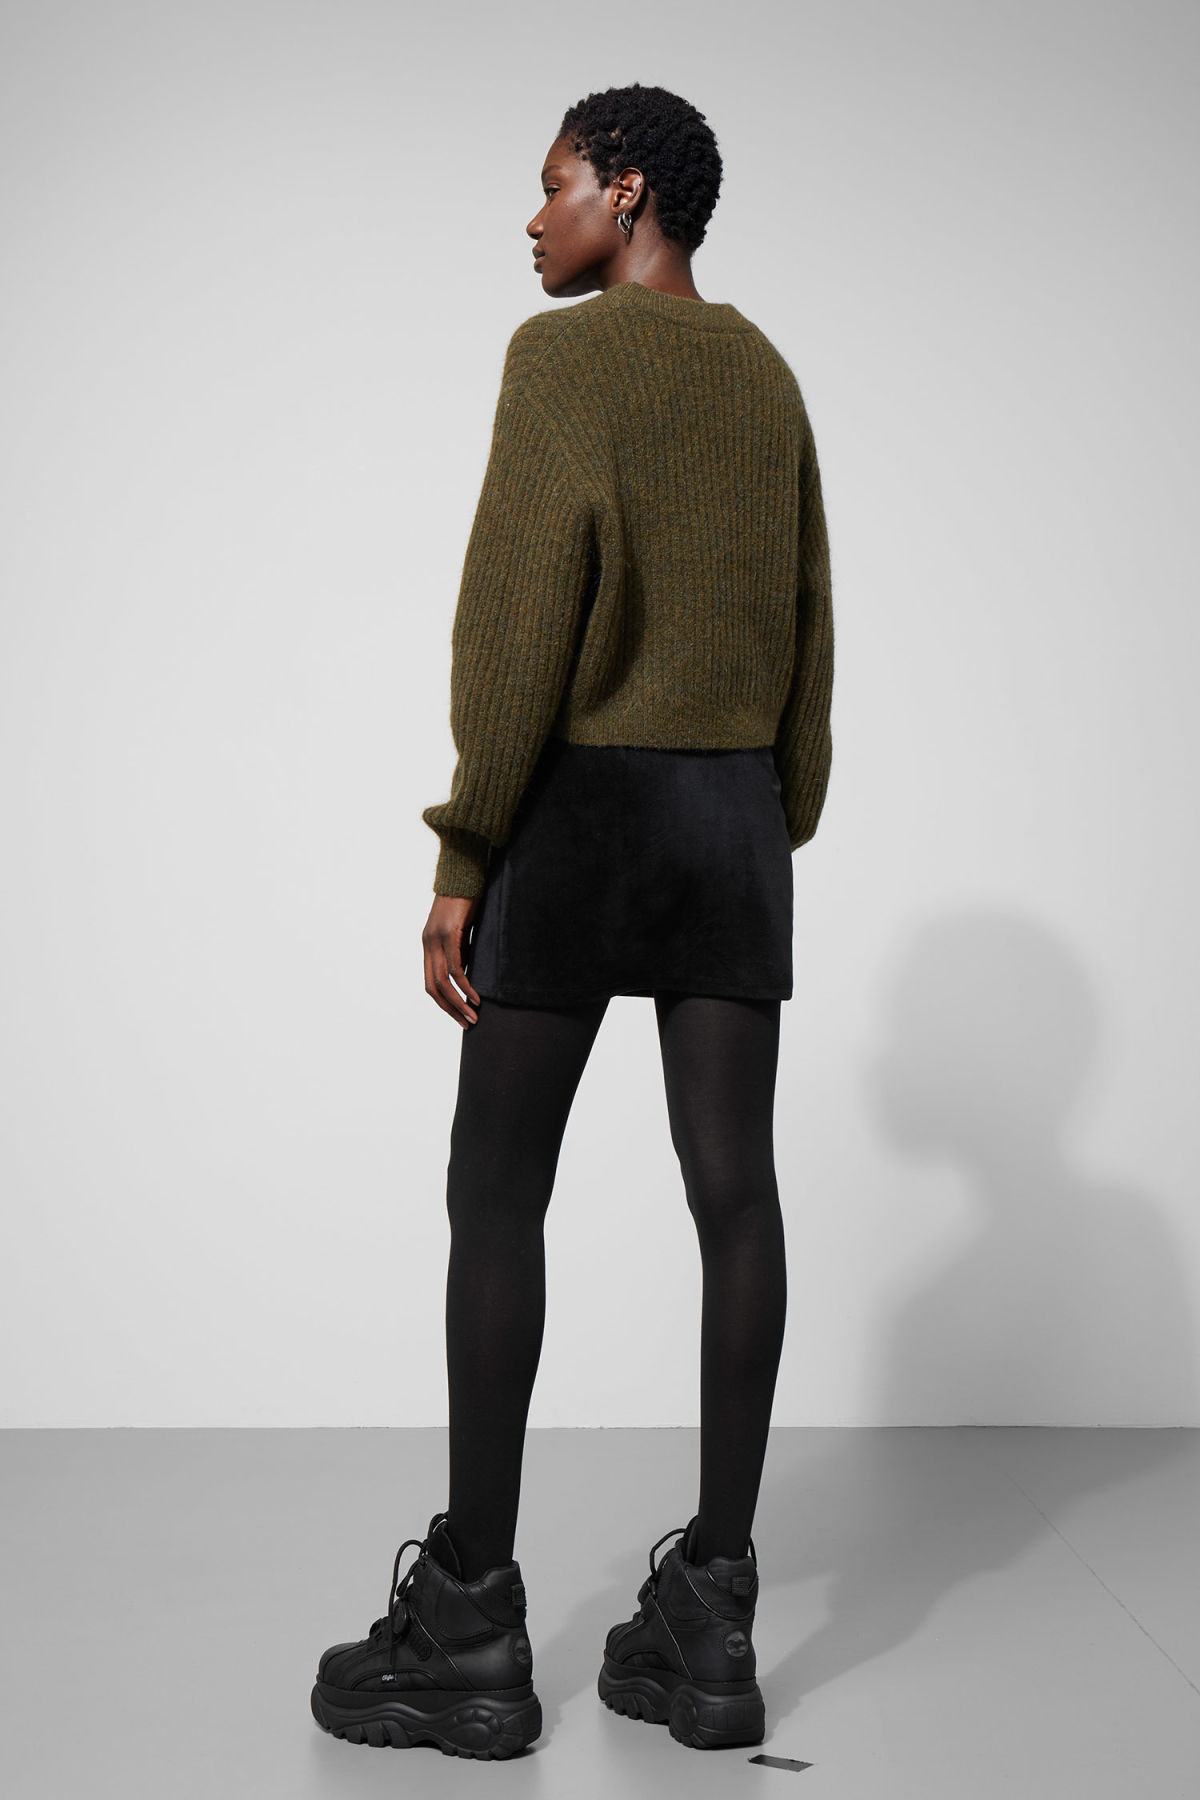 66566b3808f5be ... back image of Weekday in green Model side image of Weekday in green  Detailed image of Weekday in green. Tap first to zoom. Weekday. Naya Knit  Jumper